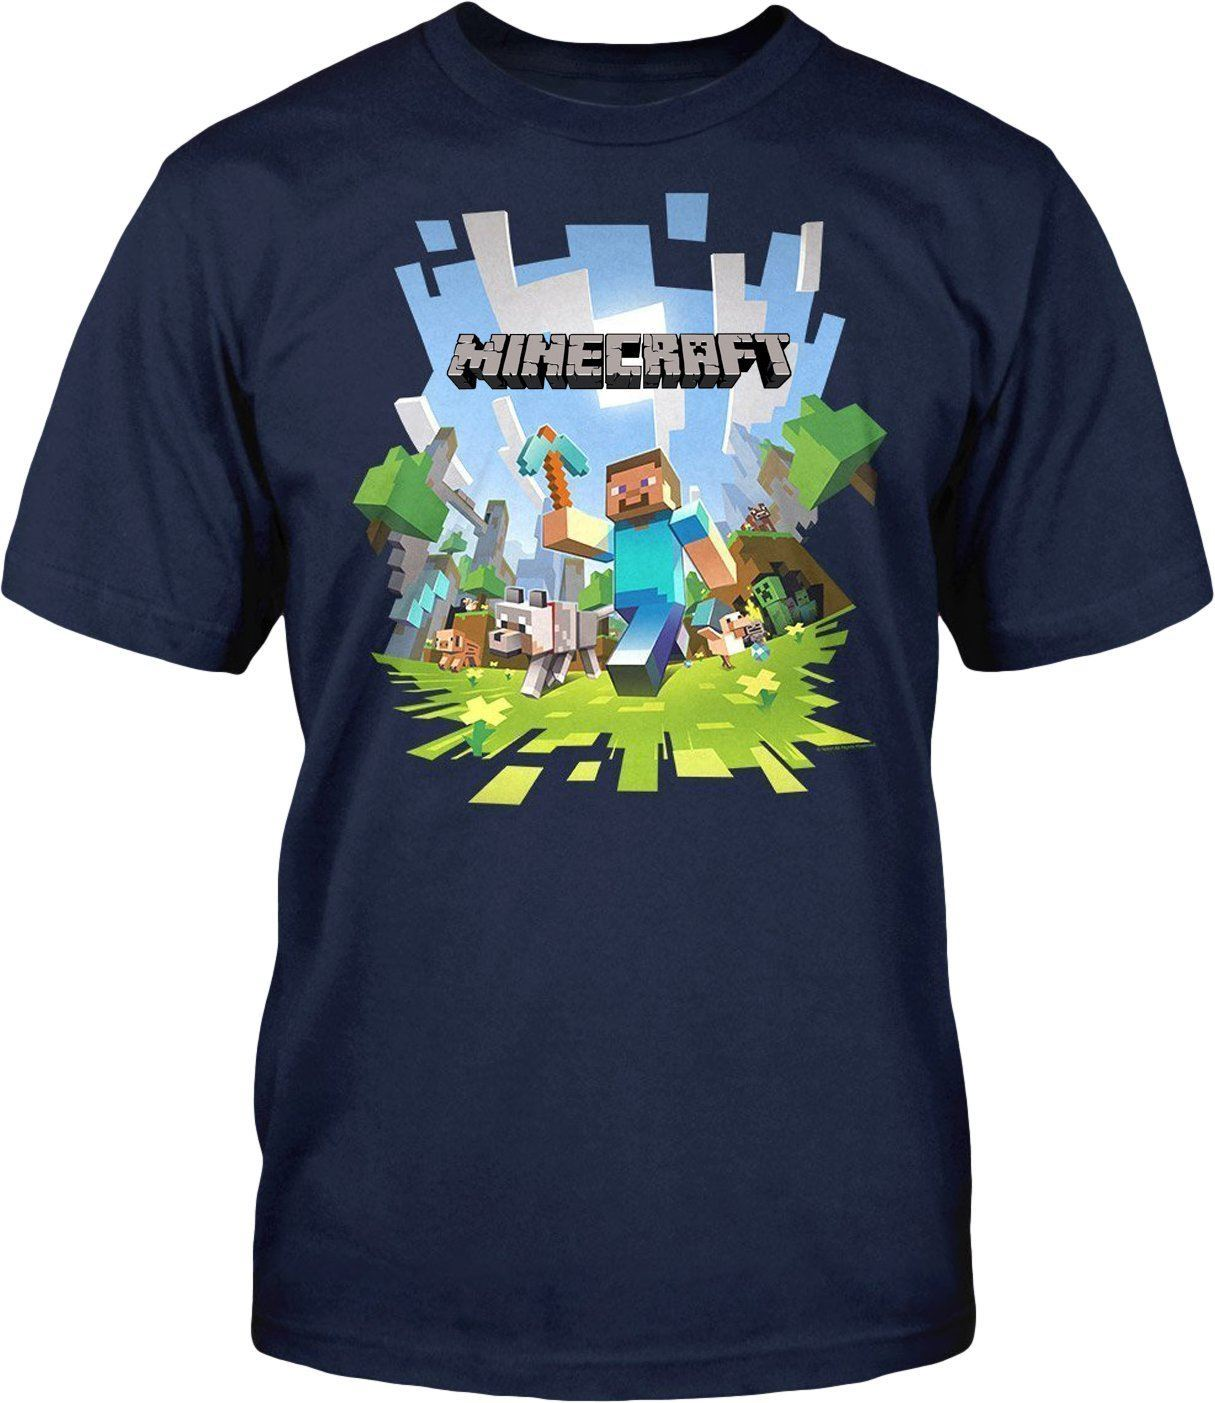 Enjoy free shipping and easy returns every day at Kohl's. Find great deals on Kids Minecraft Clothing at Kohl's today!